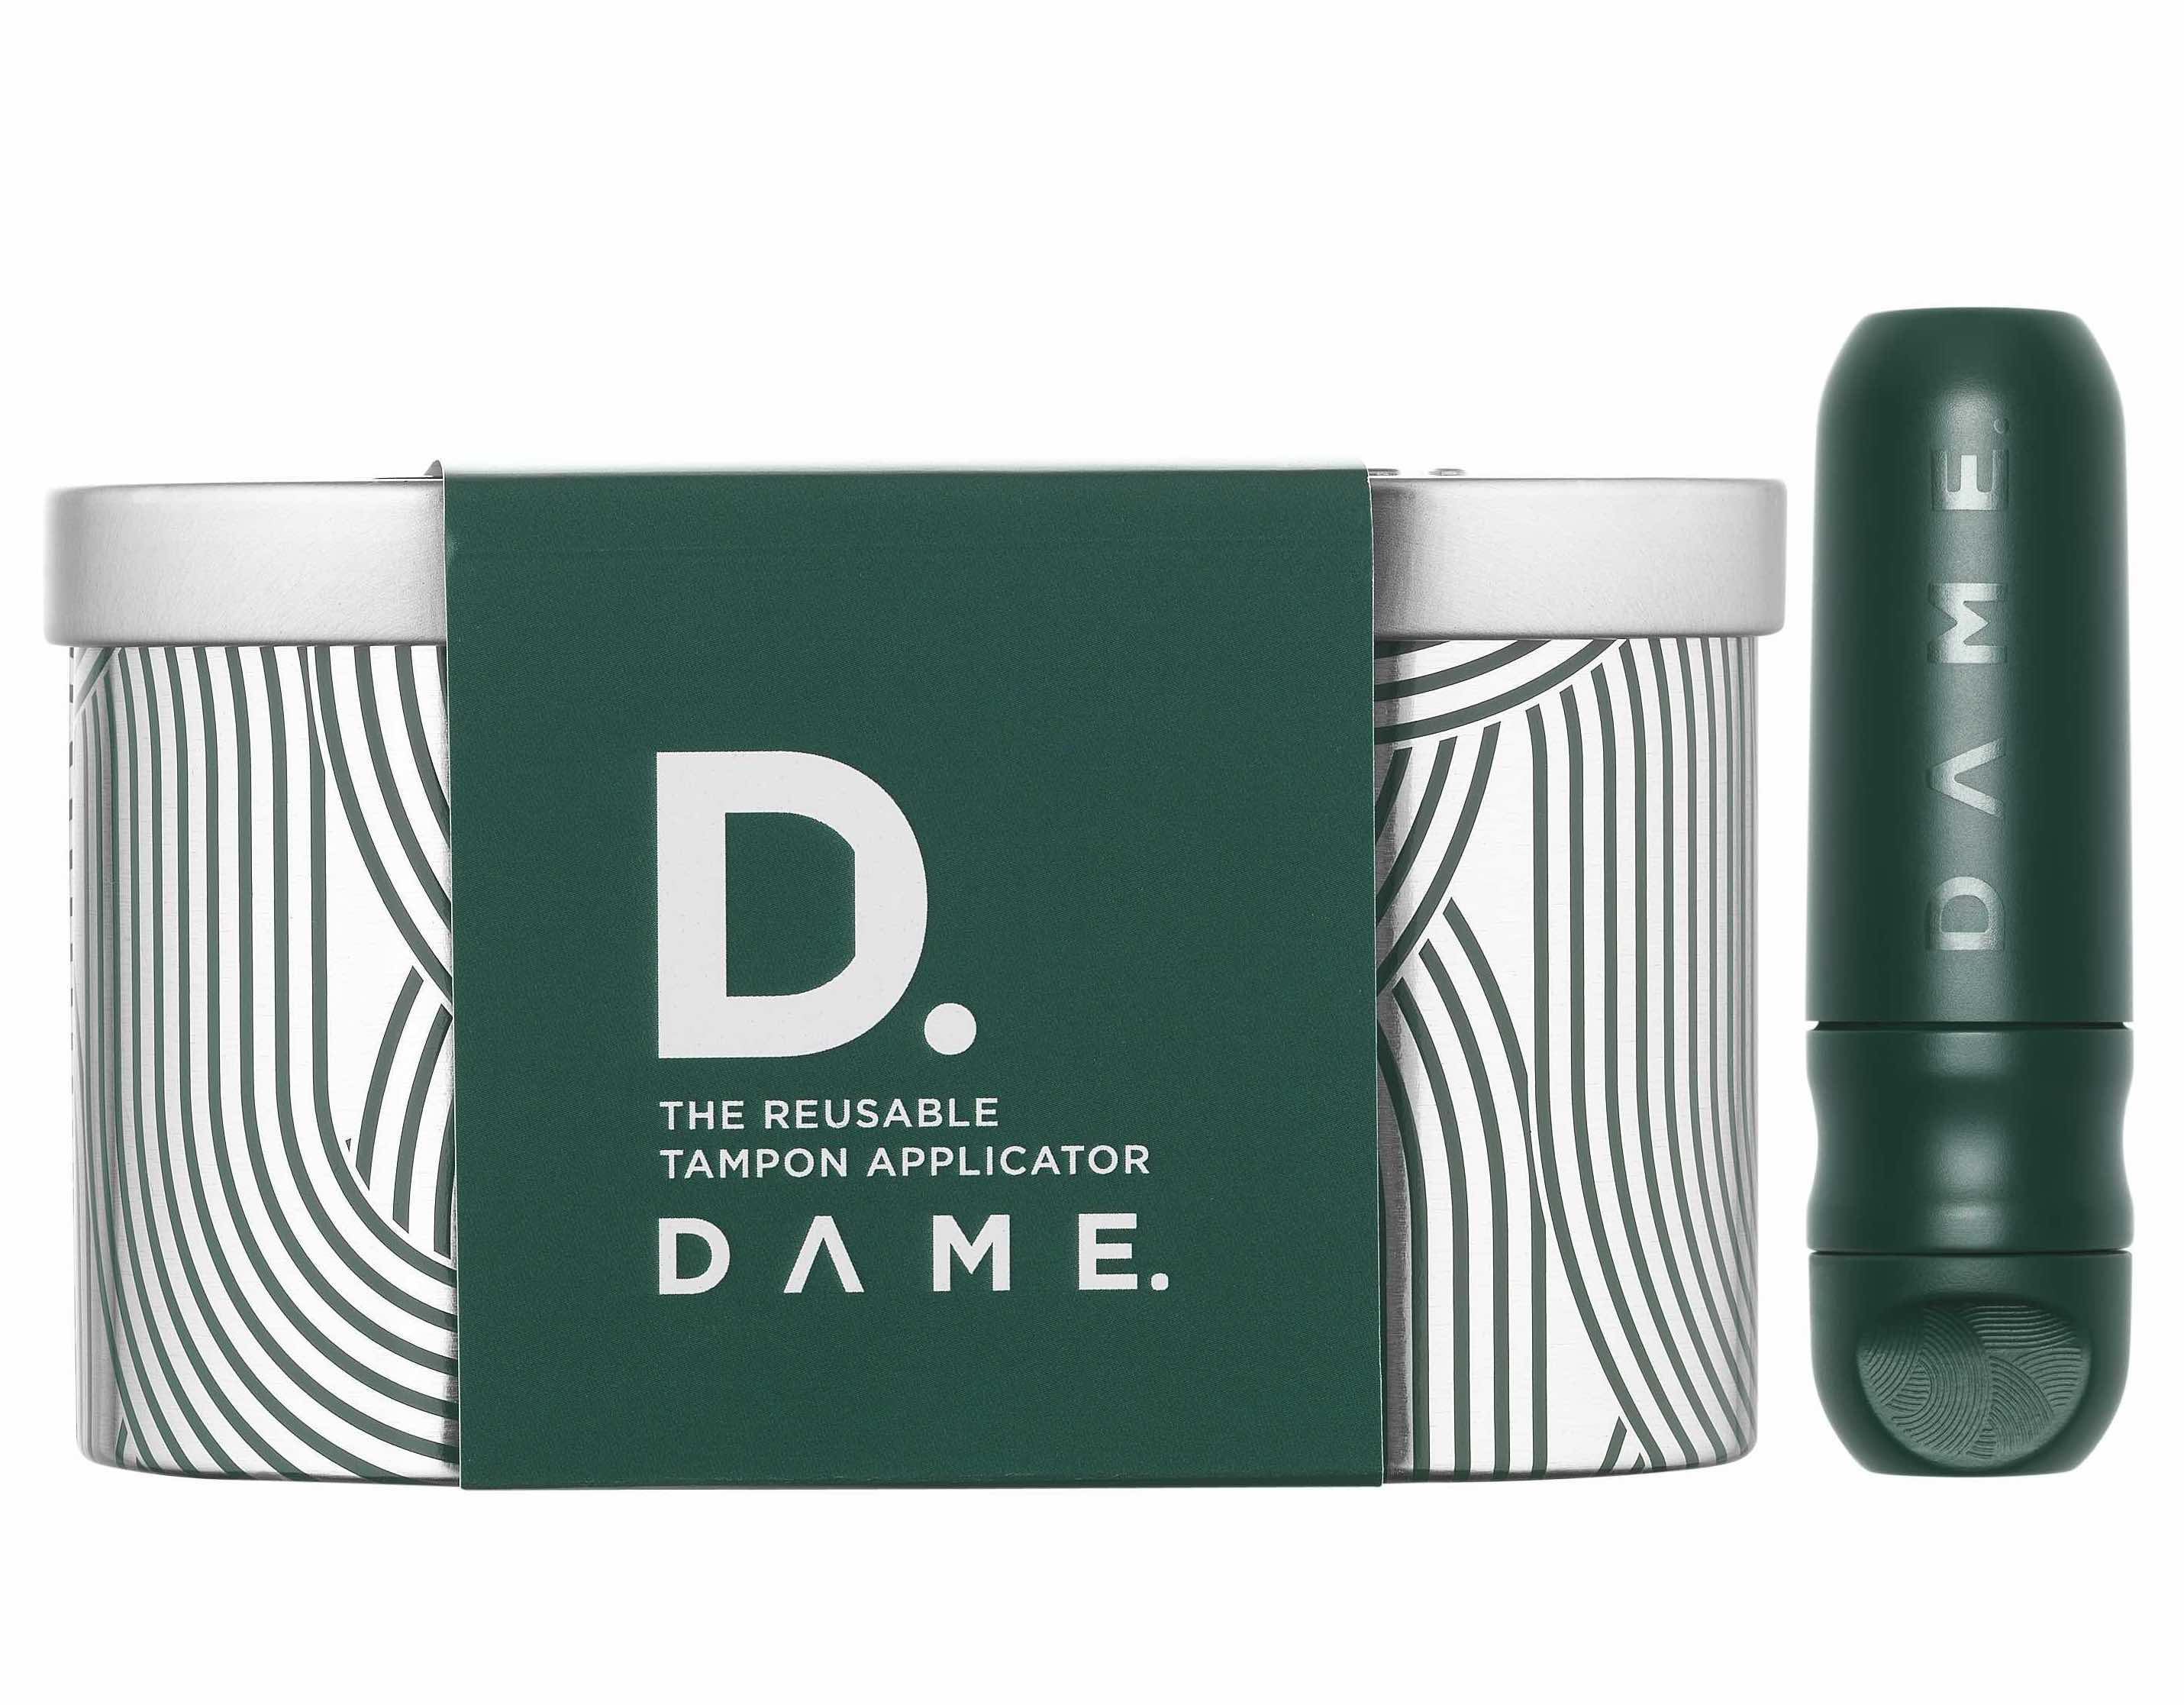 DAME reusable tampon applicator